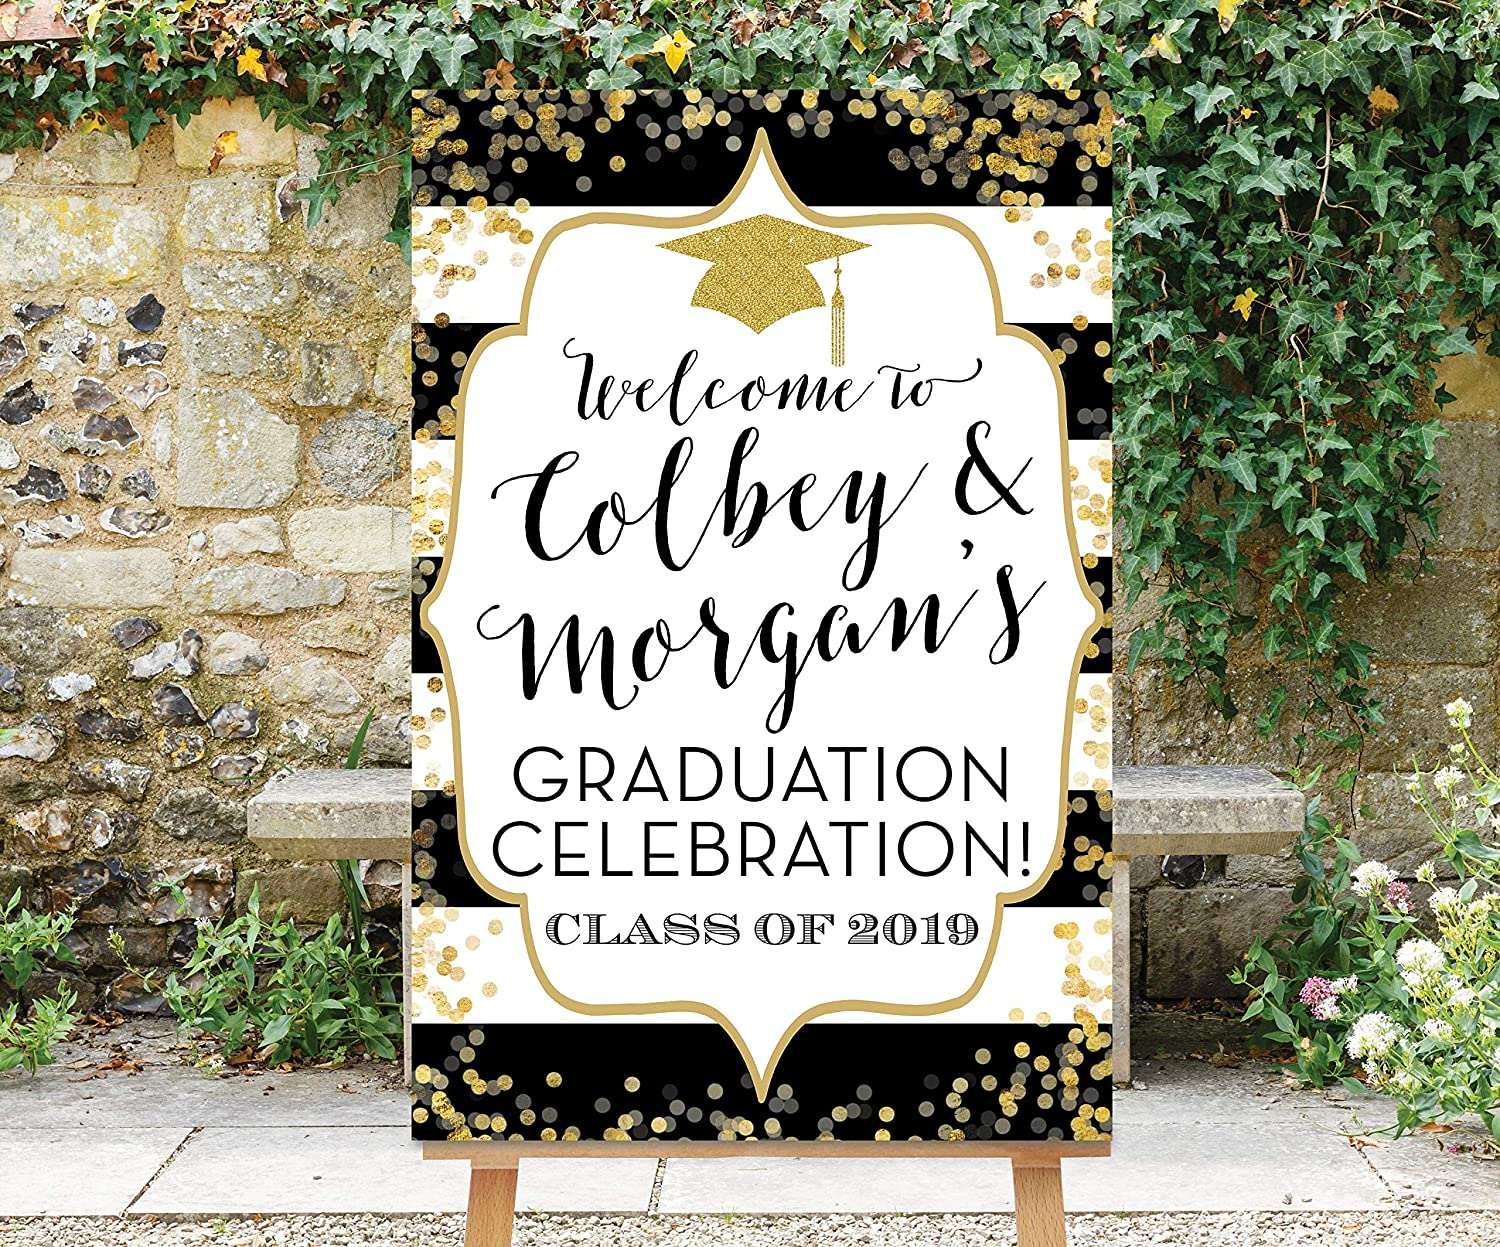 DKISEE Graduation Save money Welcome Finally popular brand Sign Black Gold Na Two